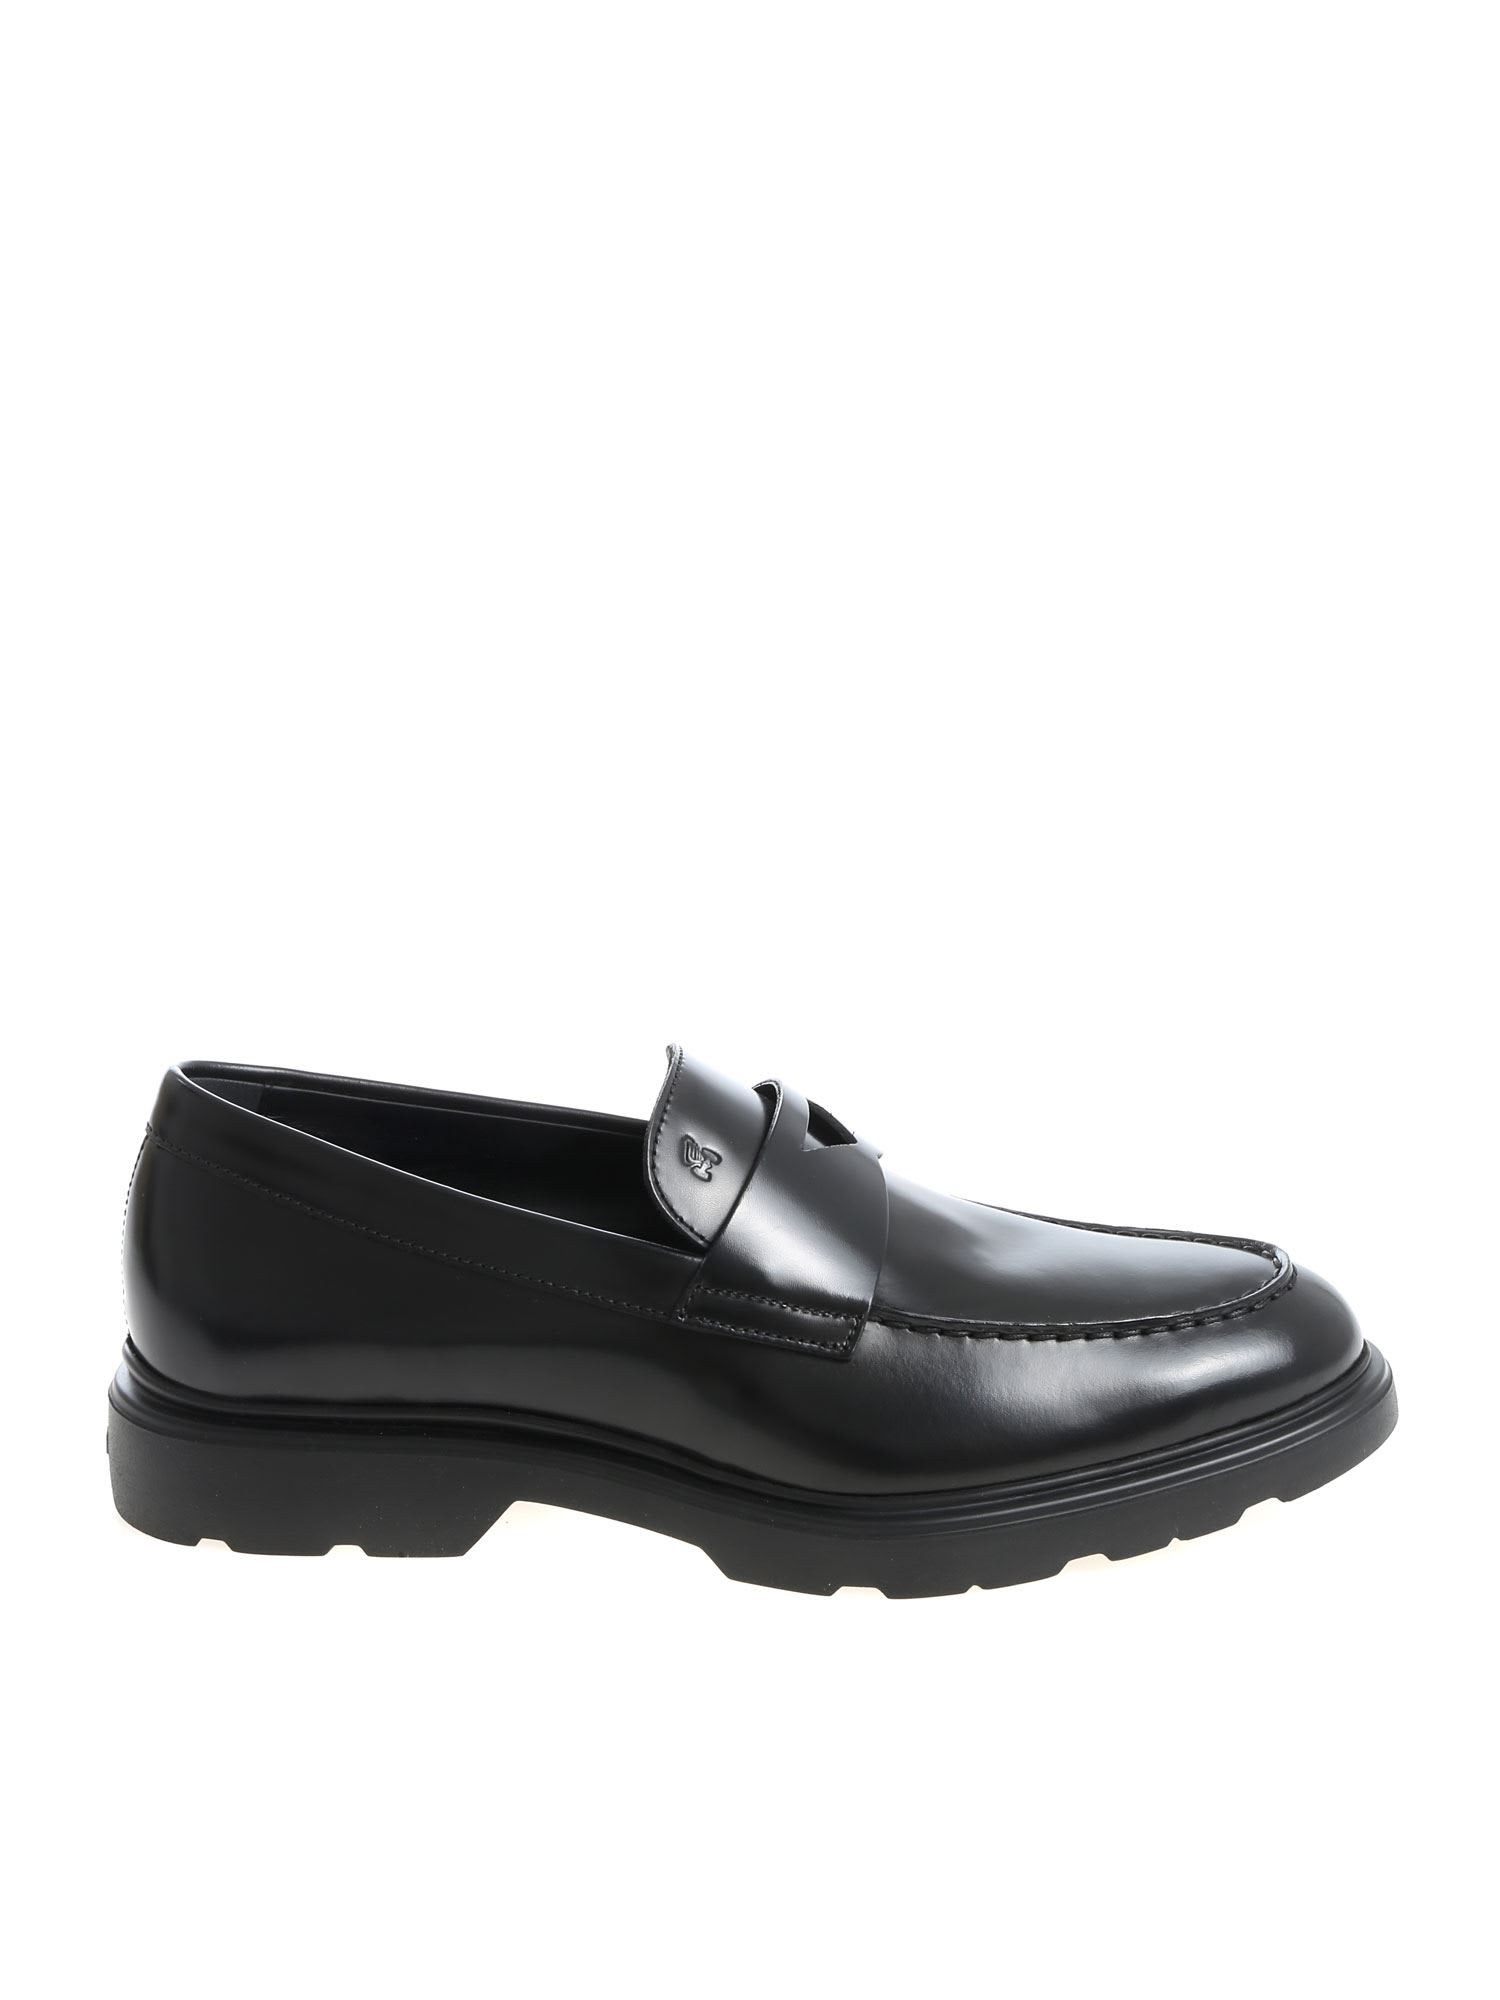 HOGAN H393 LOAFERS